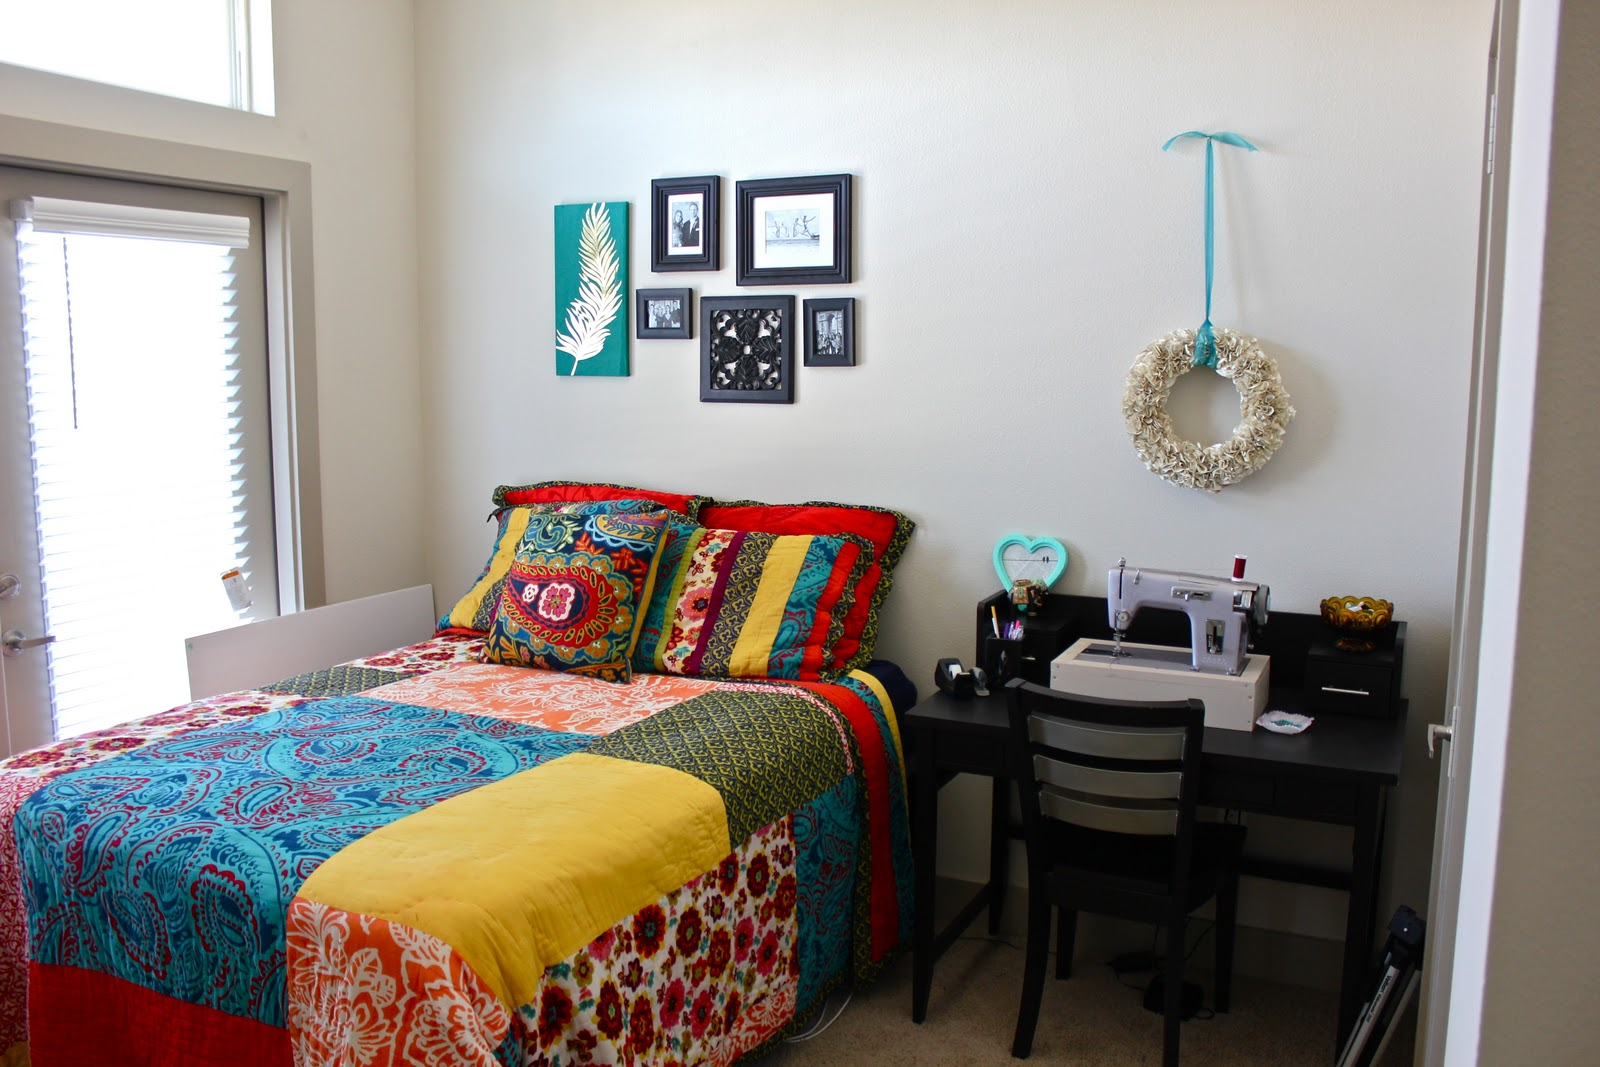 Apartment bedroom for girls - College Apartment Bedroom Sweet Verbena Craft Space Tour